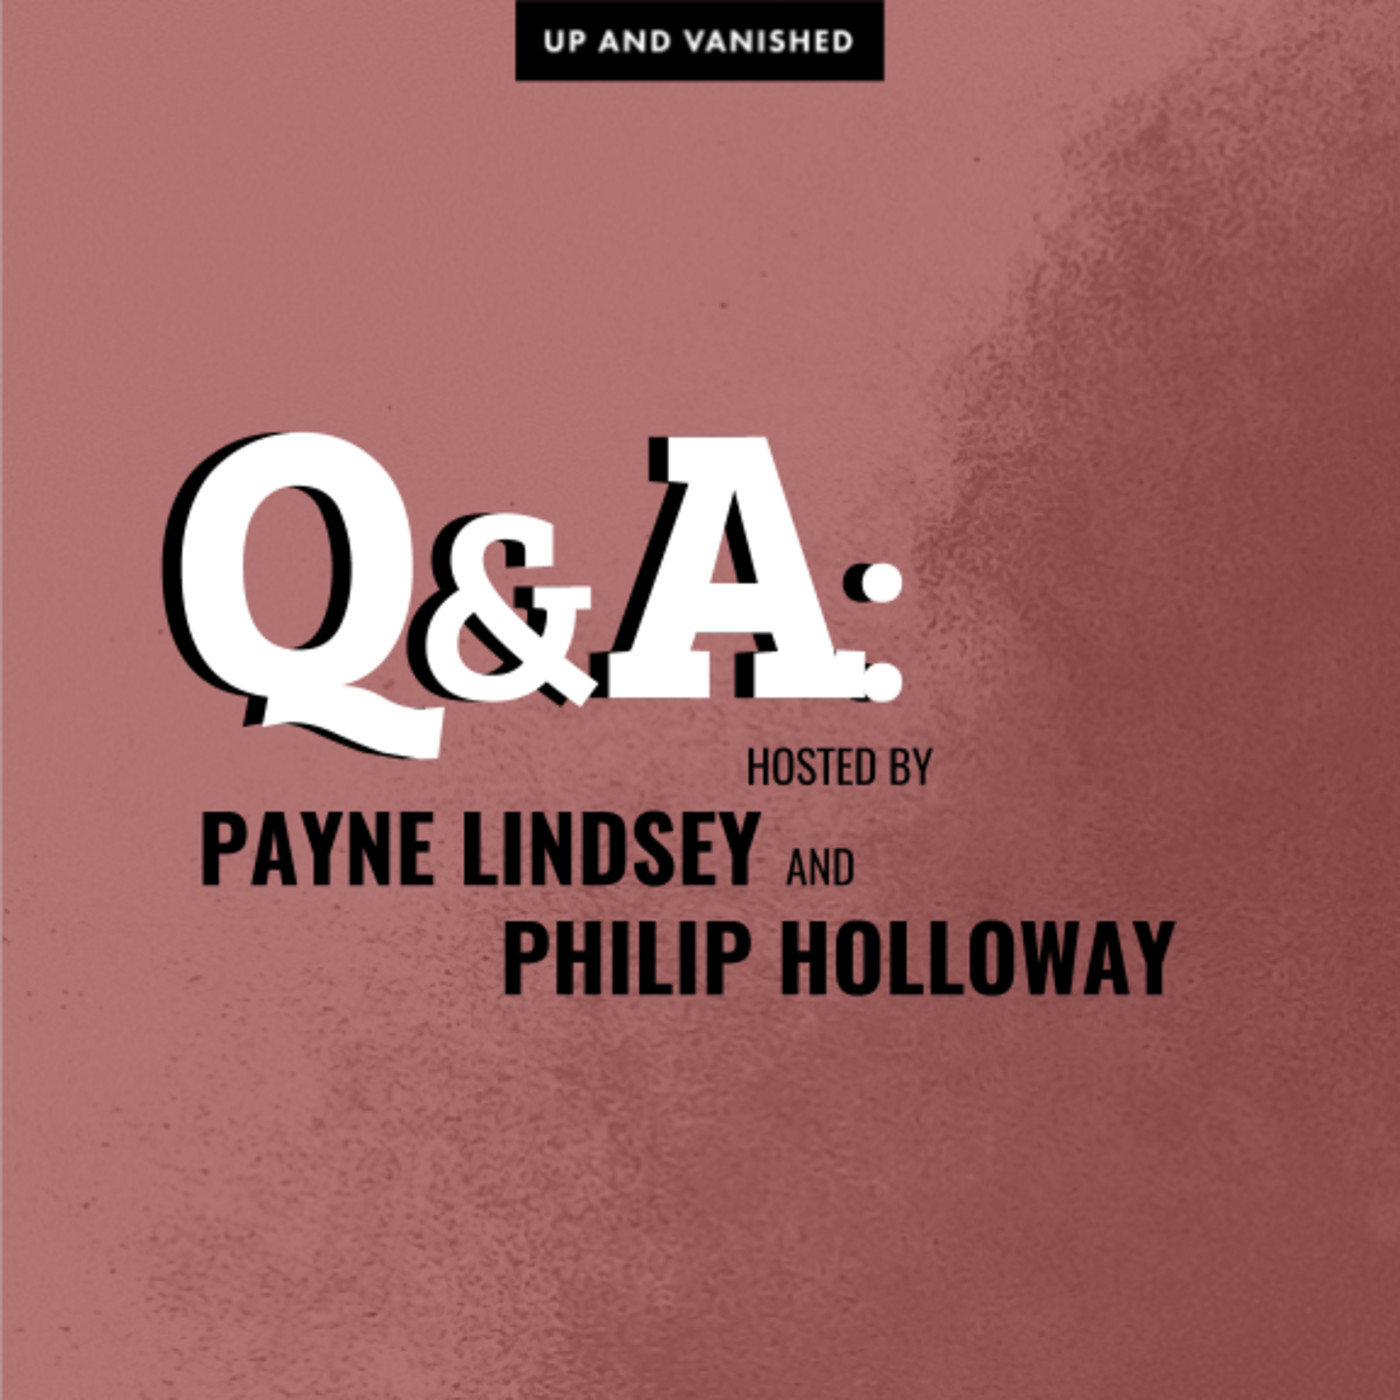 S1E : Q&A with Payne Lindsey and Philip Holloway 05.26.17